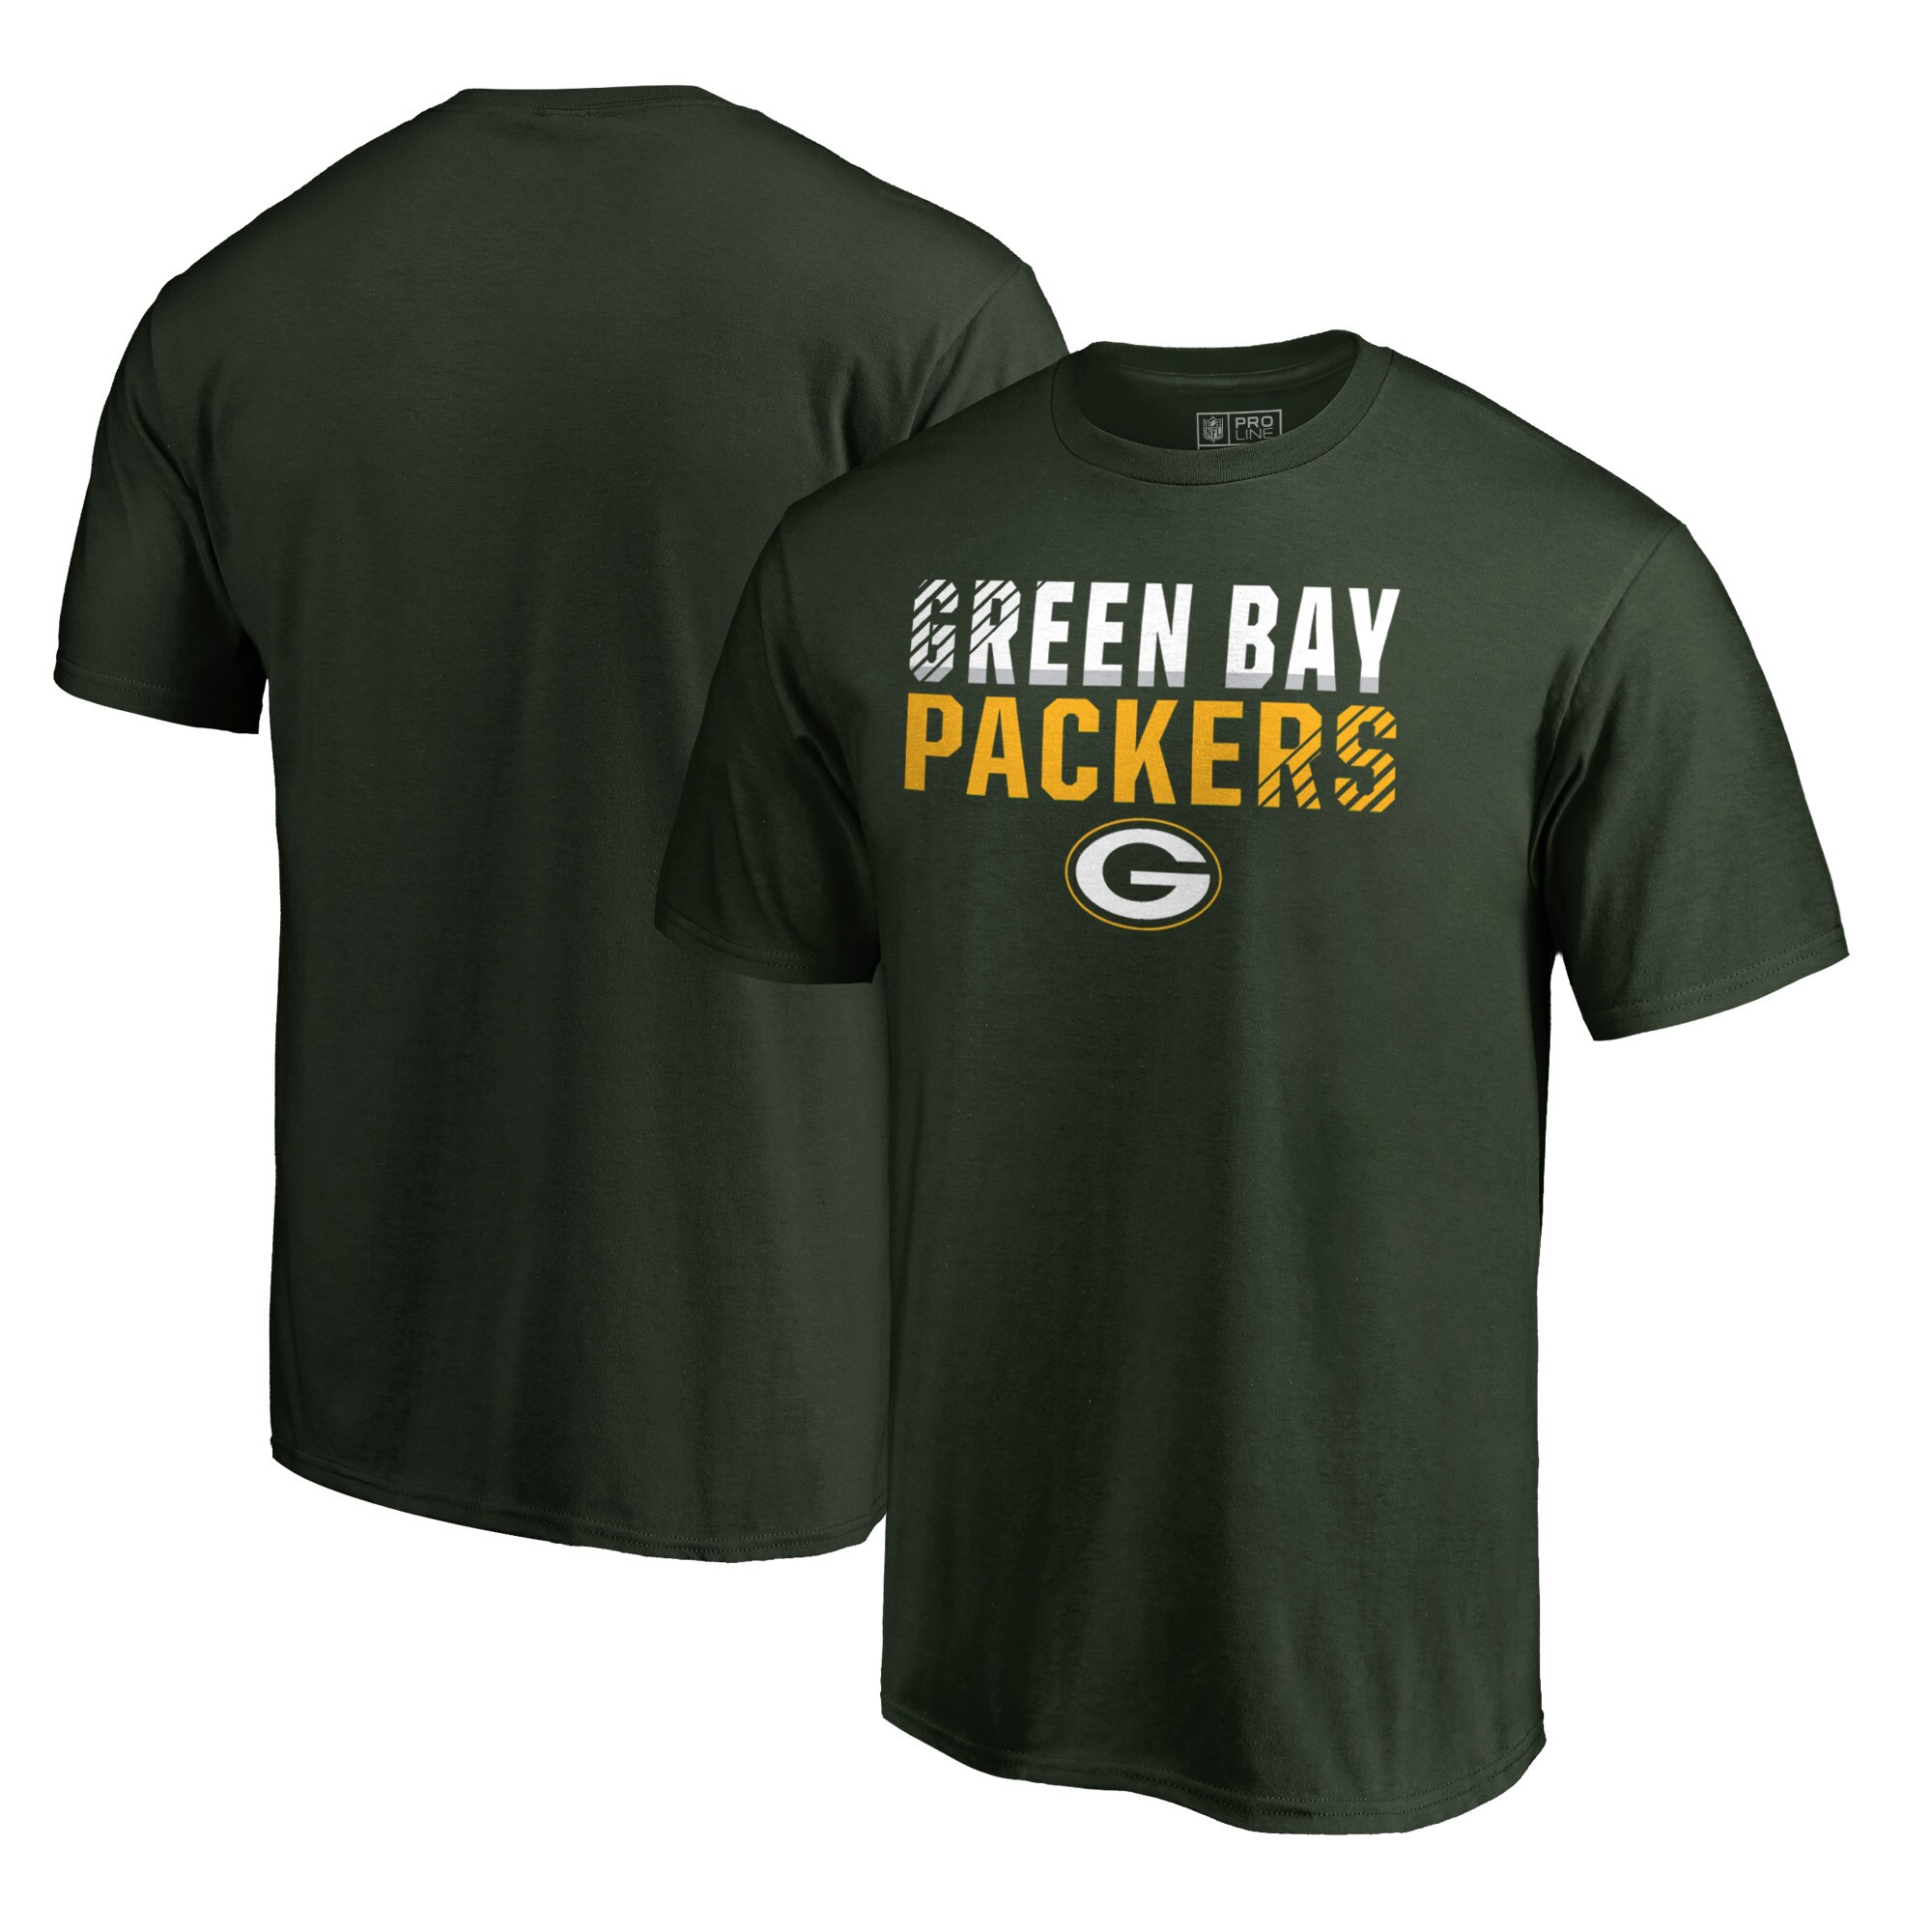 Green Bay Packers NFL Pro Line by Fanatics Branded Iconic Collection Fade Out Big and Tall T-Shirt - Green